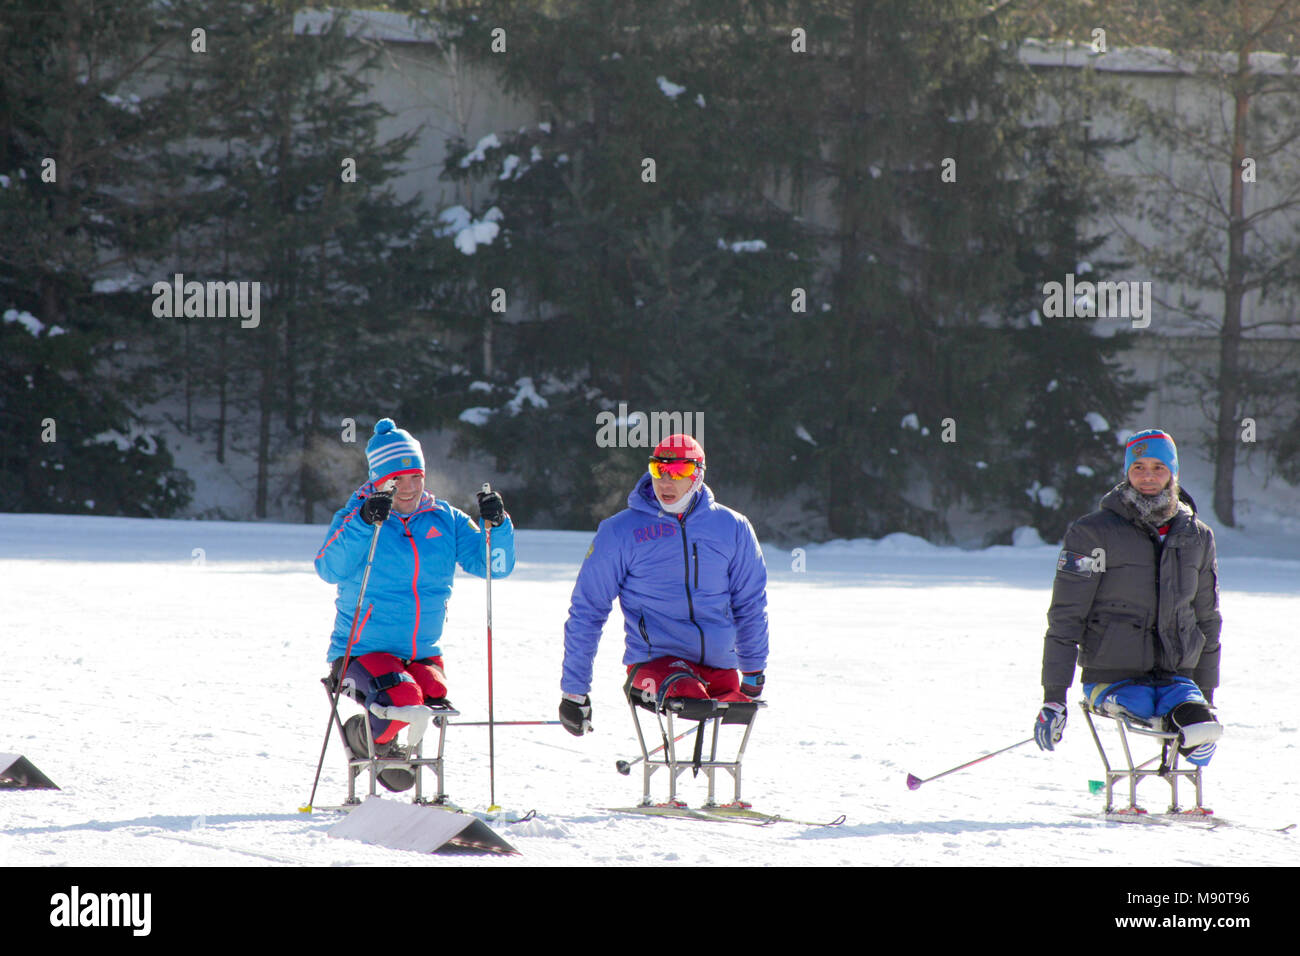 KAZAN, RUSSIA - MARCH, 2018: Three disabled skiers waiting to start on city ski competitions - Stock Image